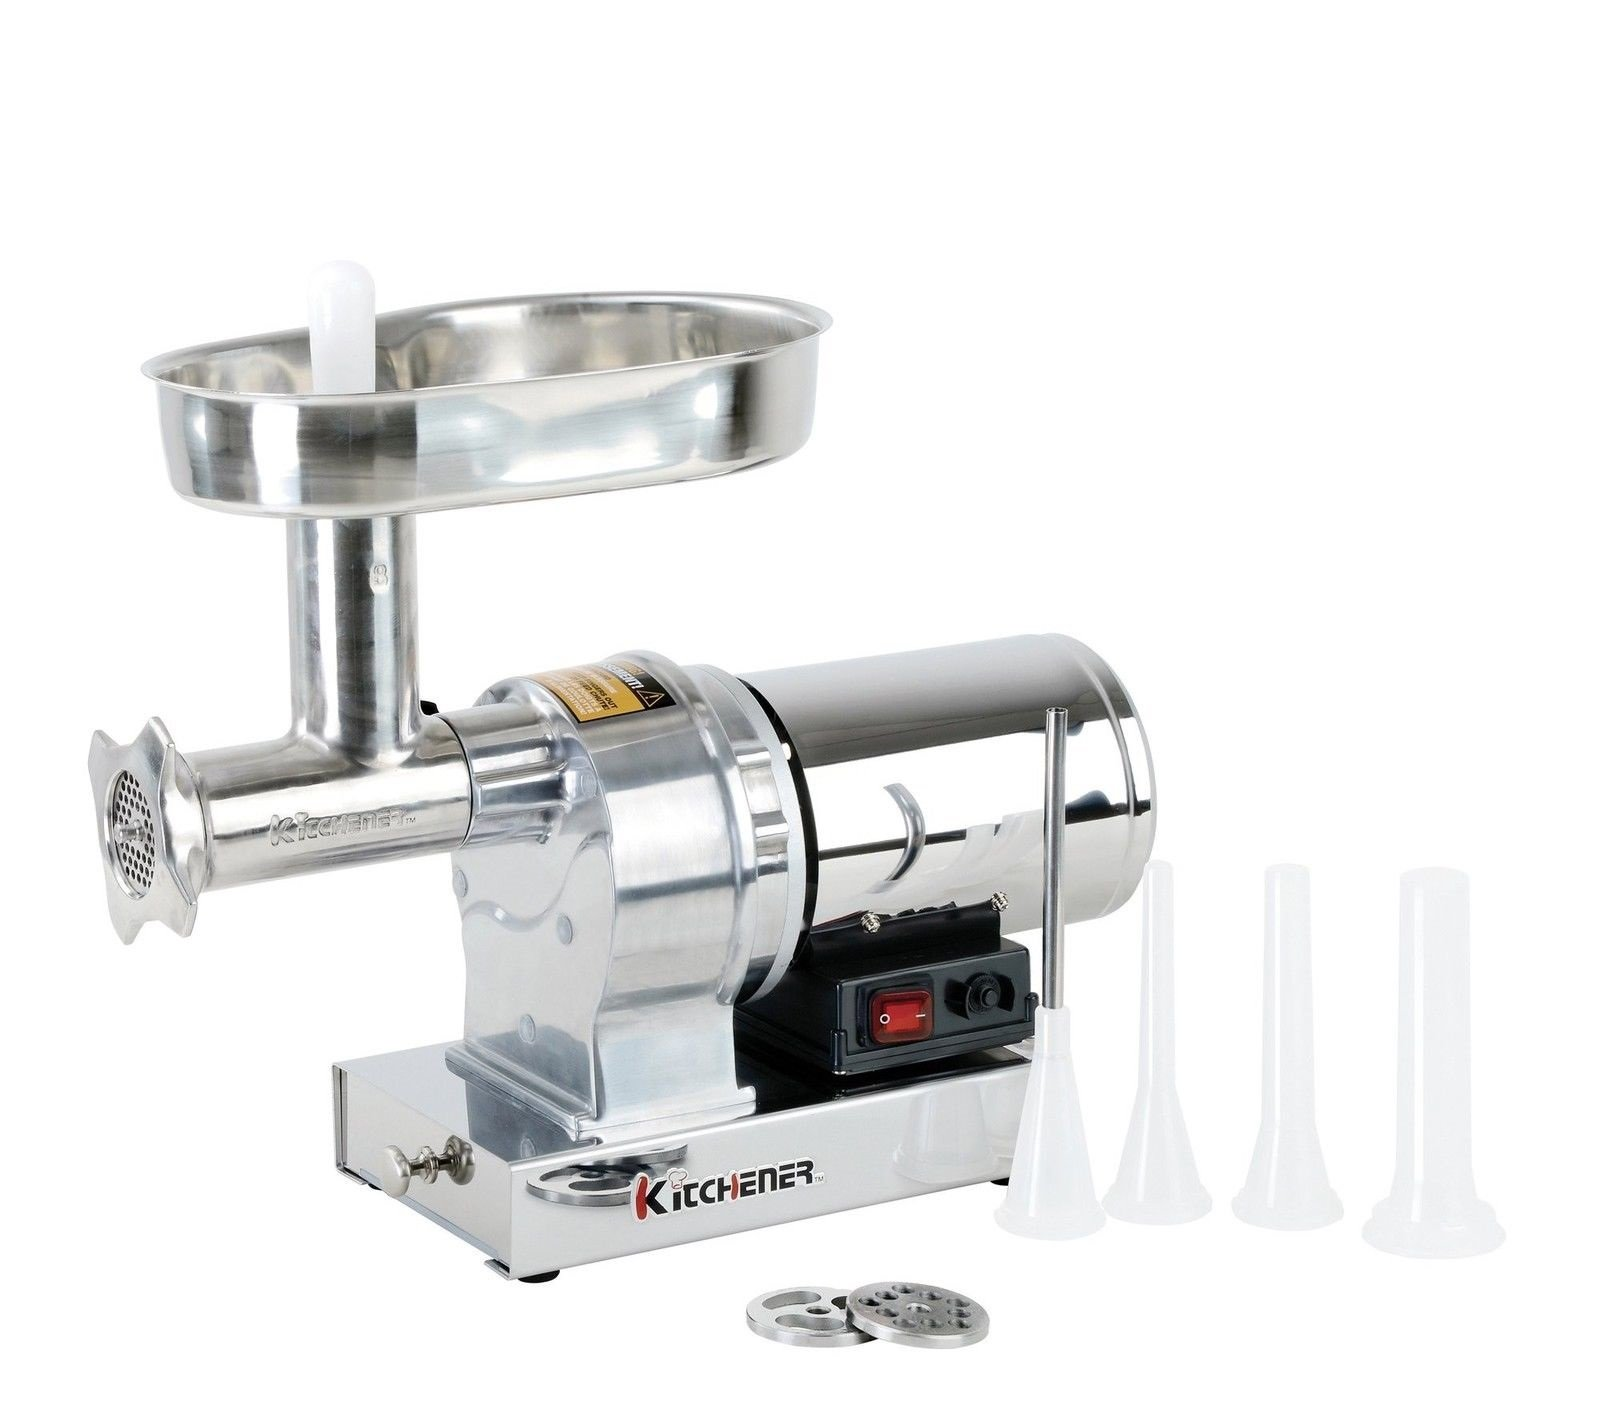 Kitchener #8 Commercial Grade Electric Stainless Steel Meat Grinder 1/2 HP (370W), (480-lbs Per Hour) by Kitchener (Image #1)